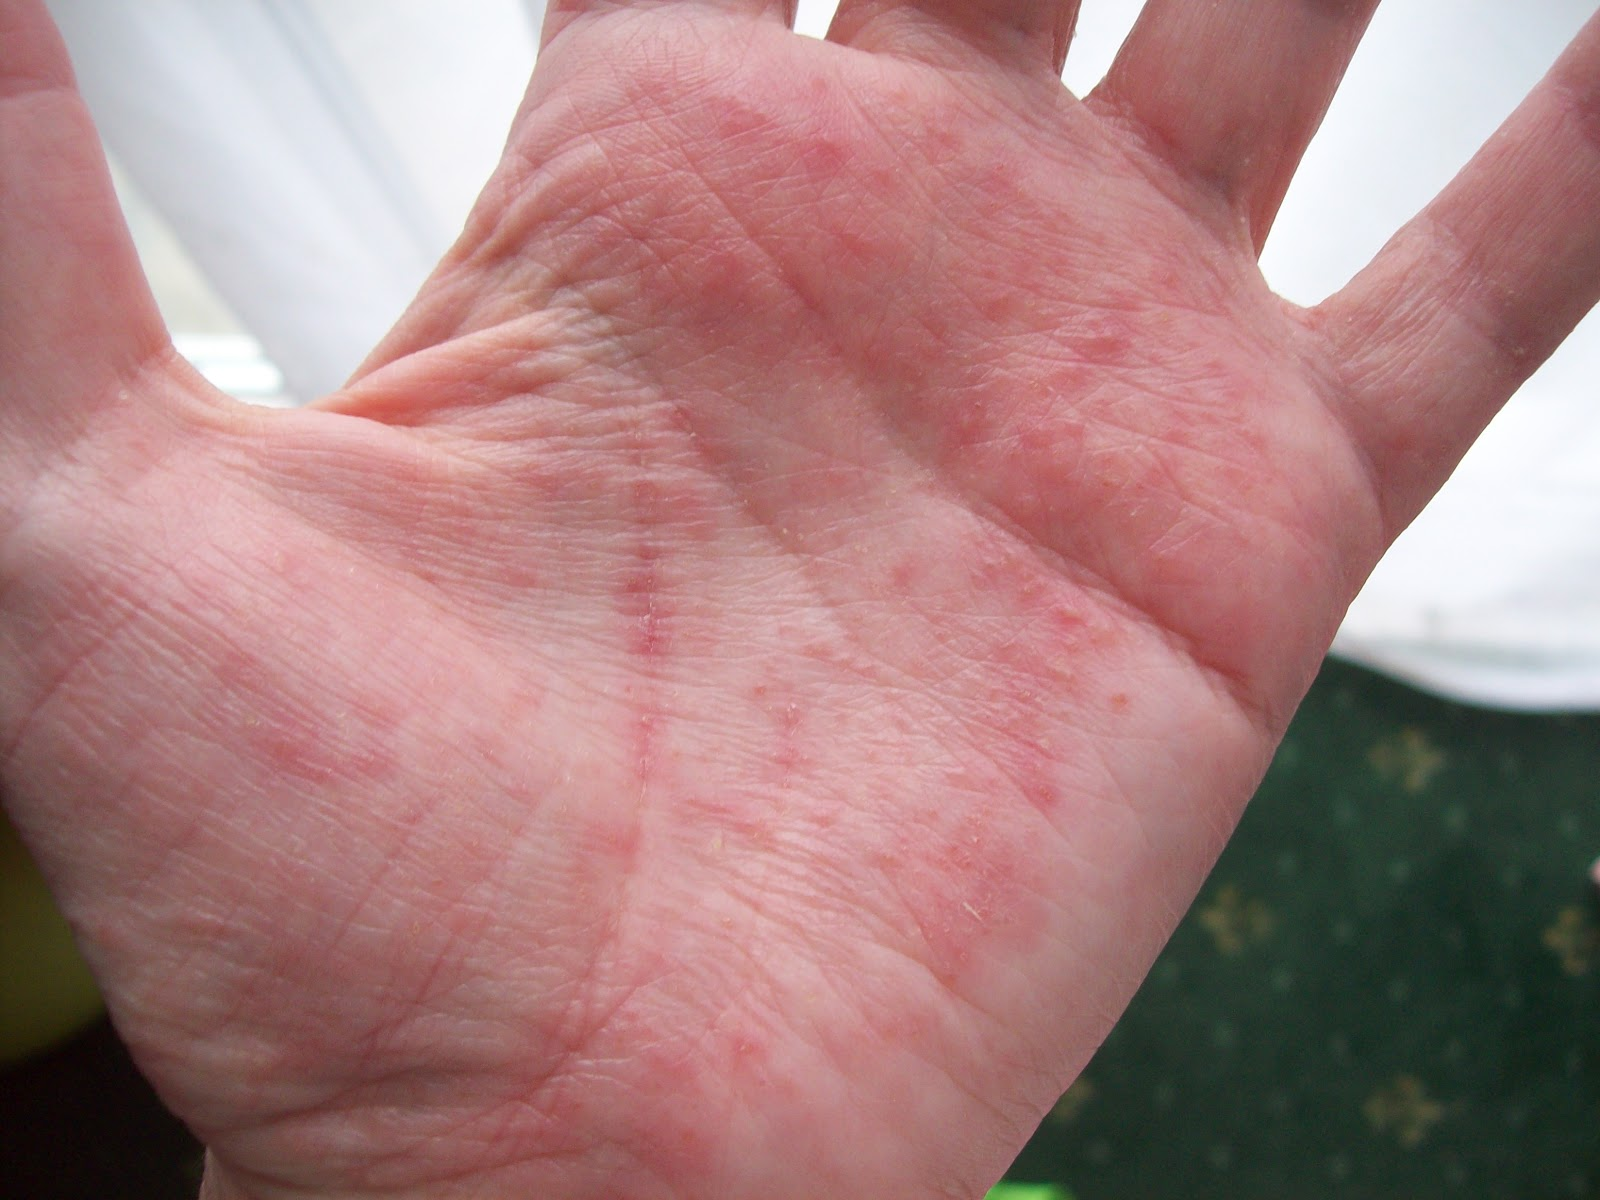 Red Itchy Bumps On Hands